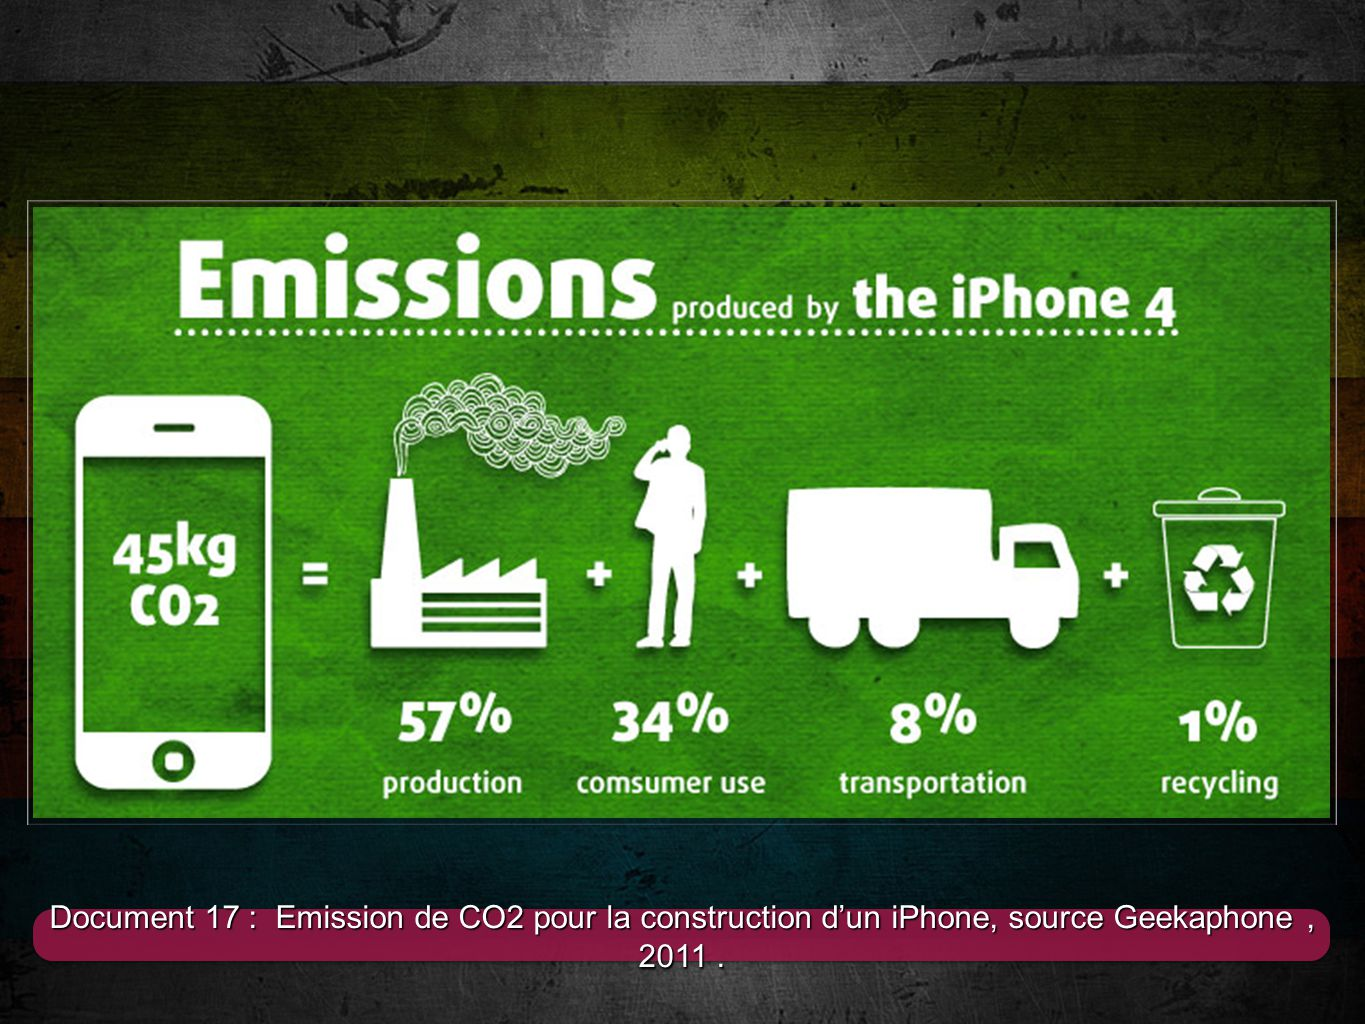 Document 17 : Emission de CO2 pour la construction d'un iPhone, source Geekaphone , 2011 .